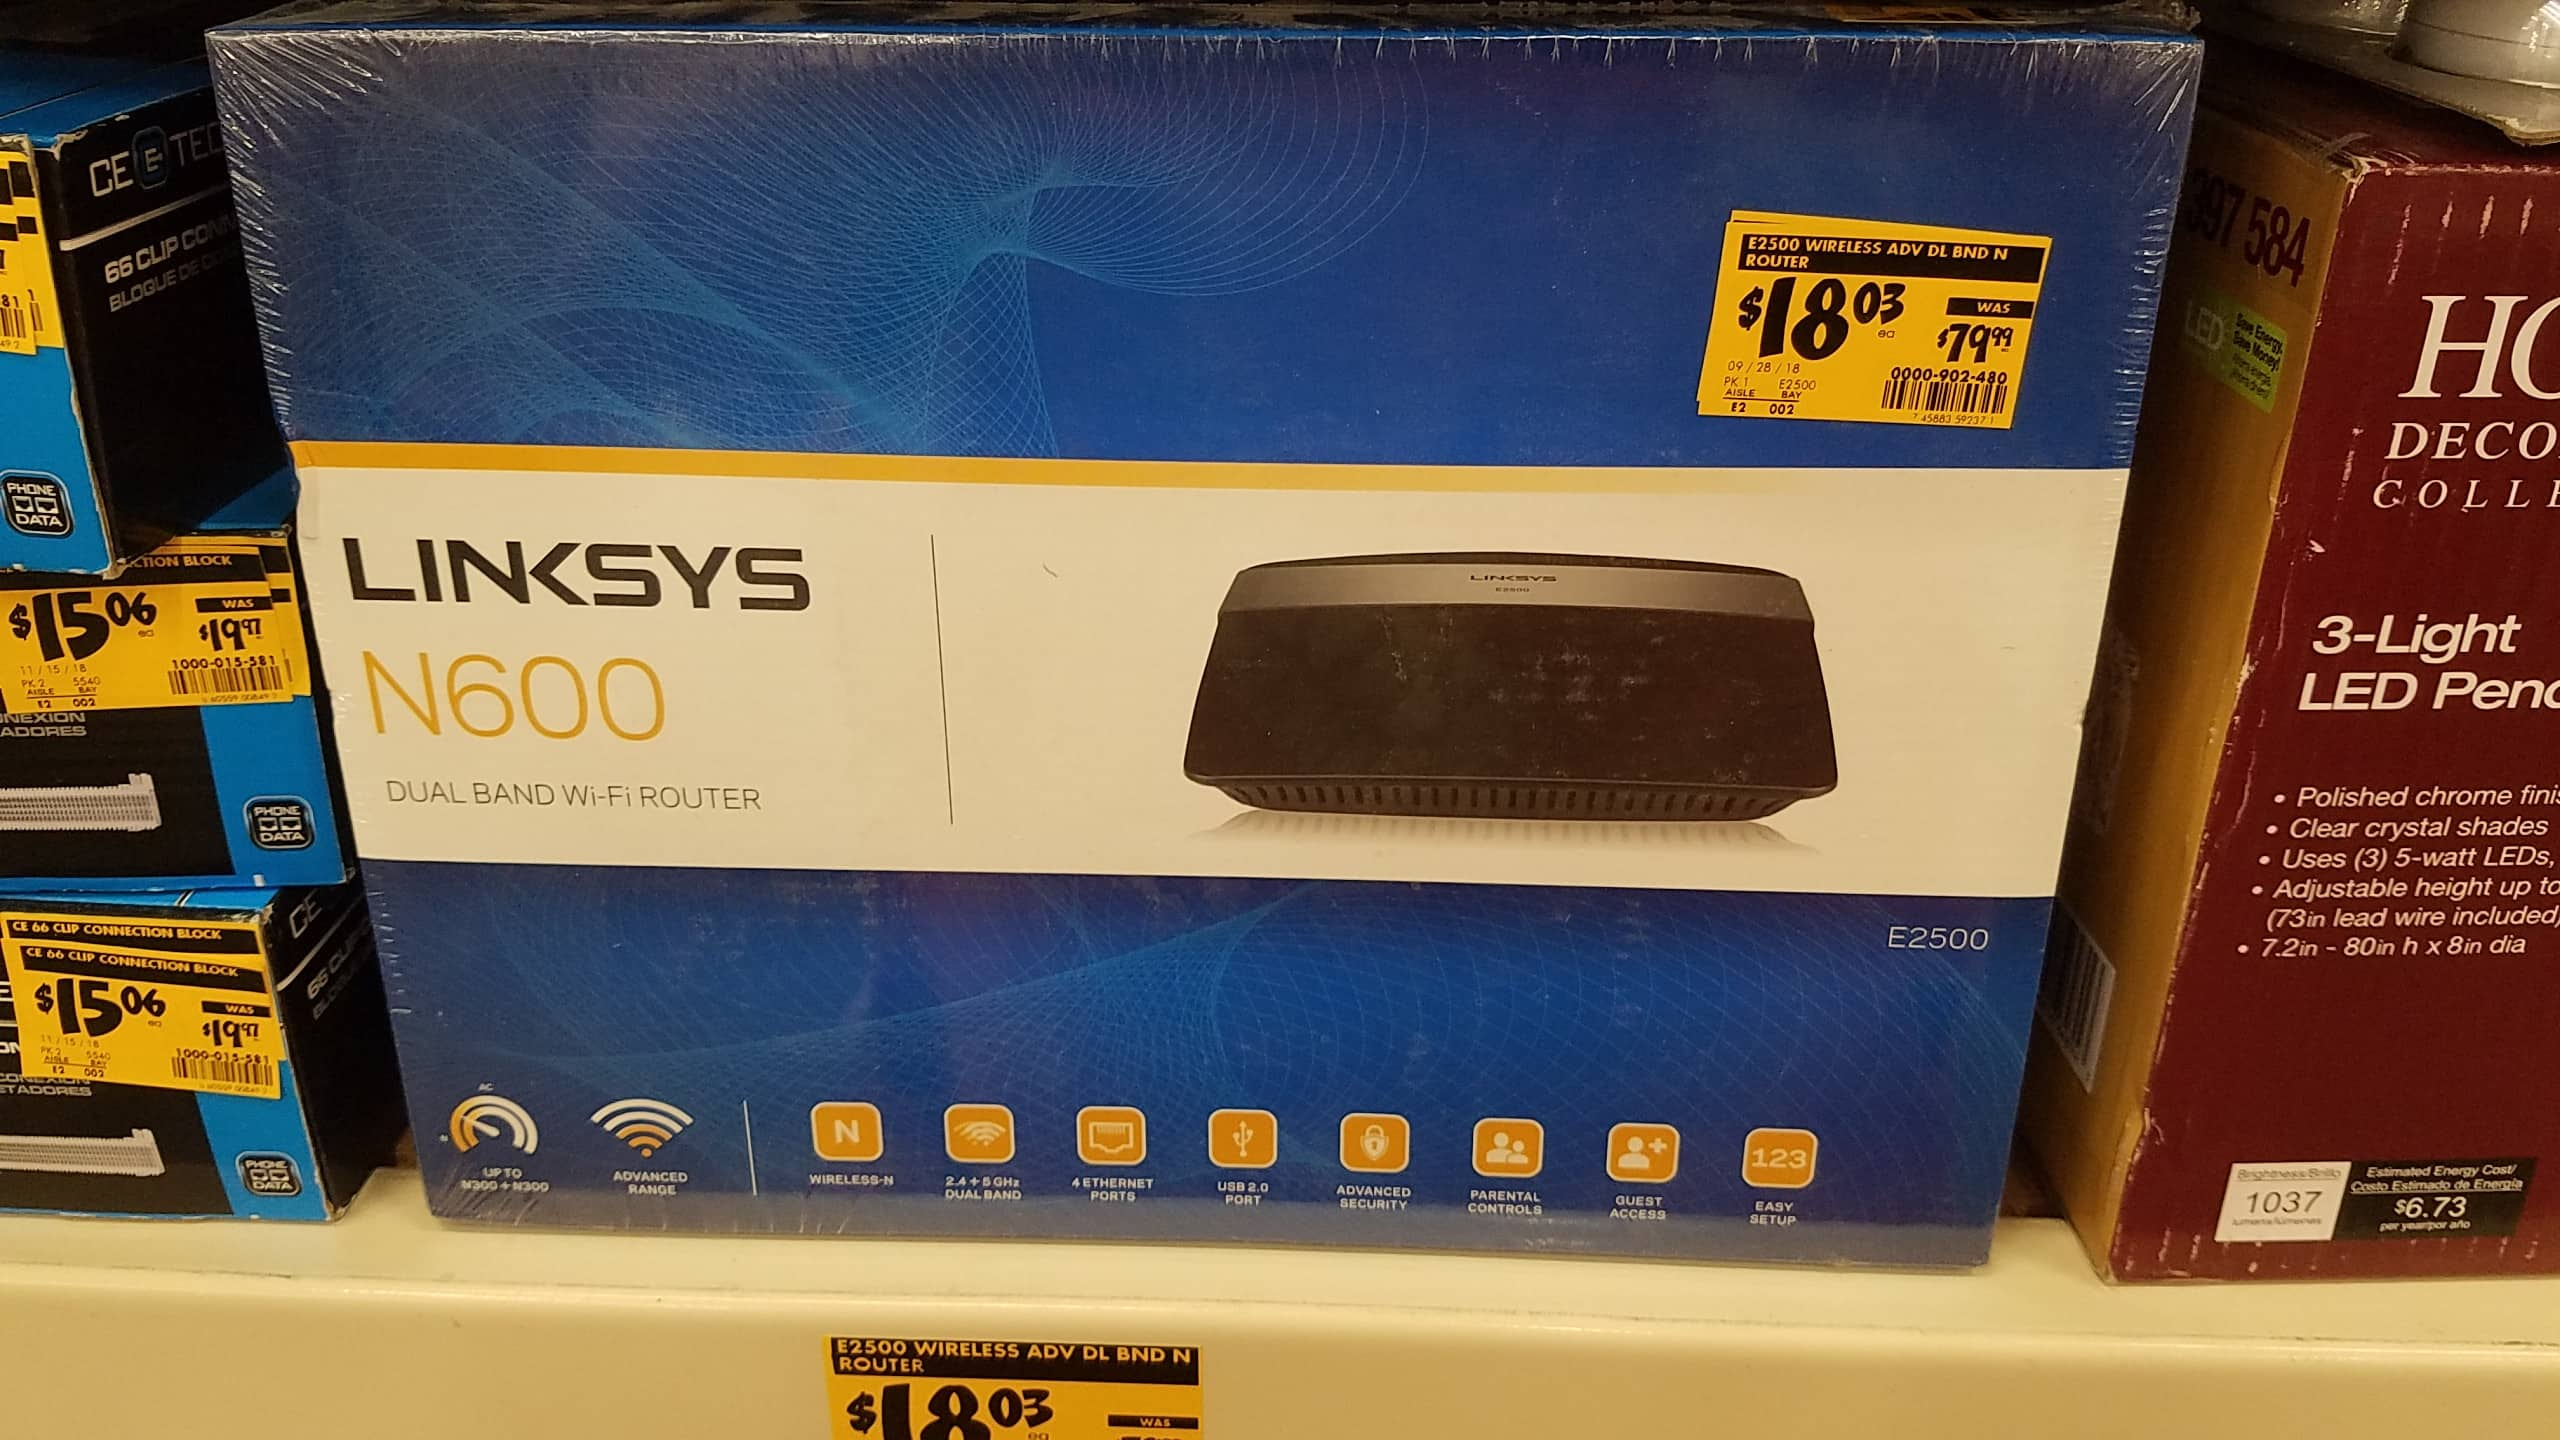 Linksys N600 Dual band WiFi router $18 03 at Home Depot YMMV